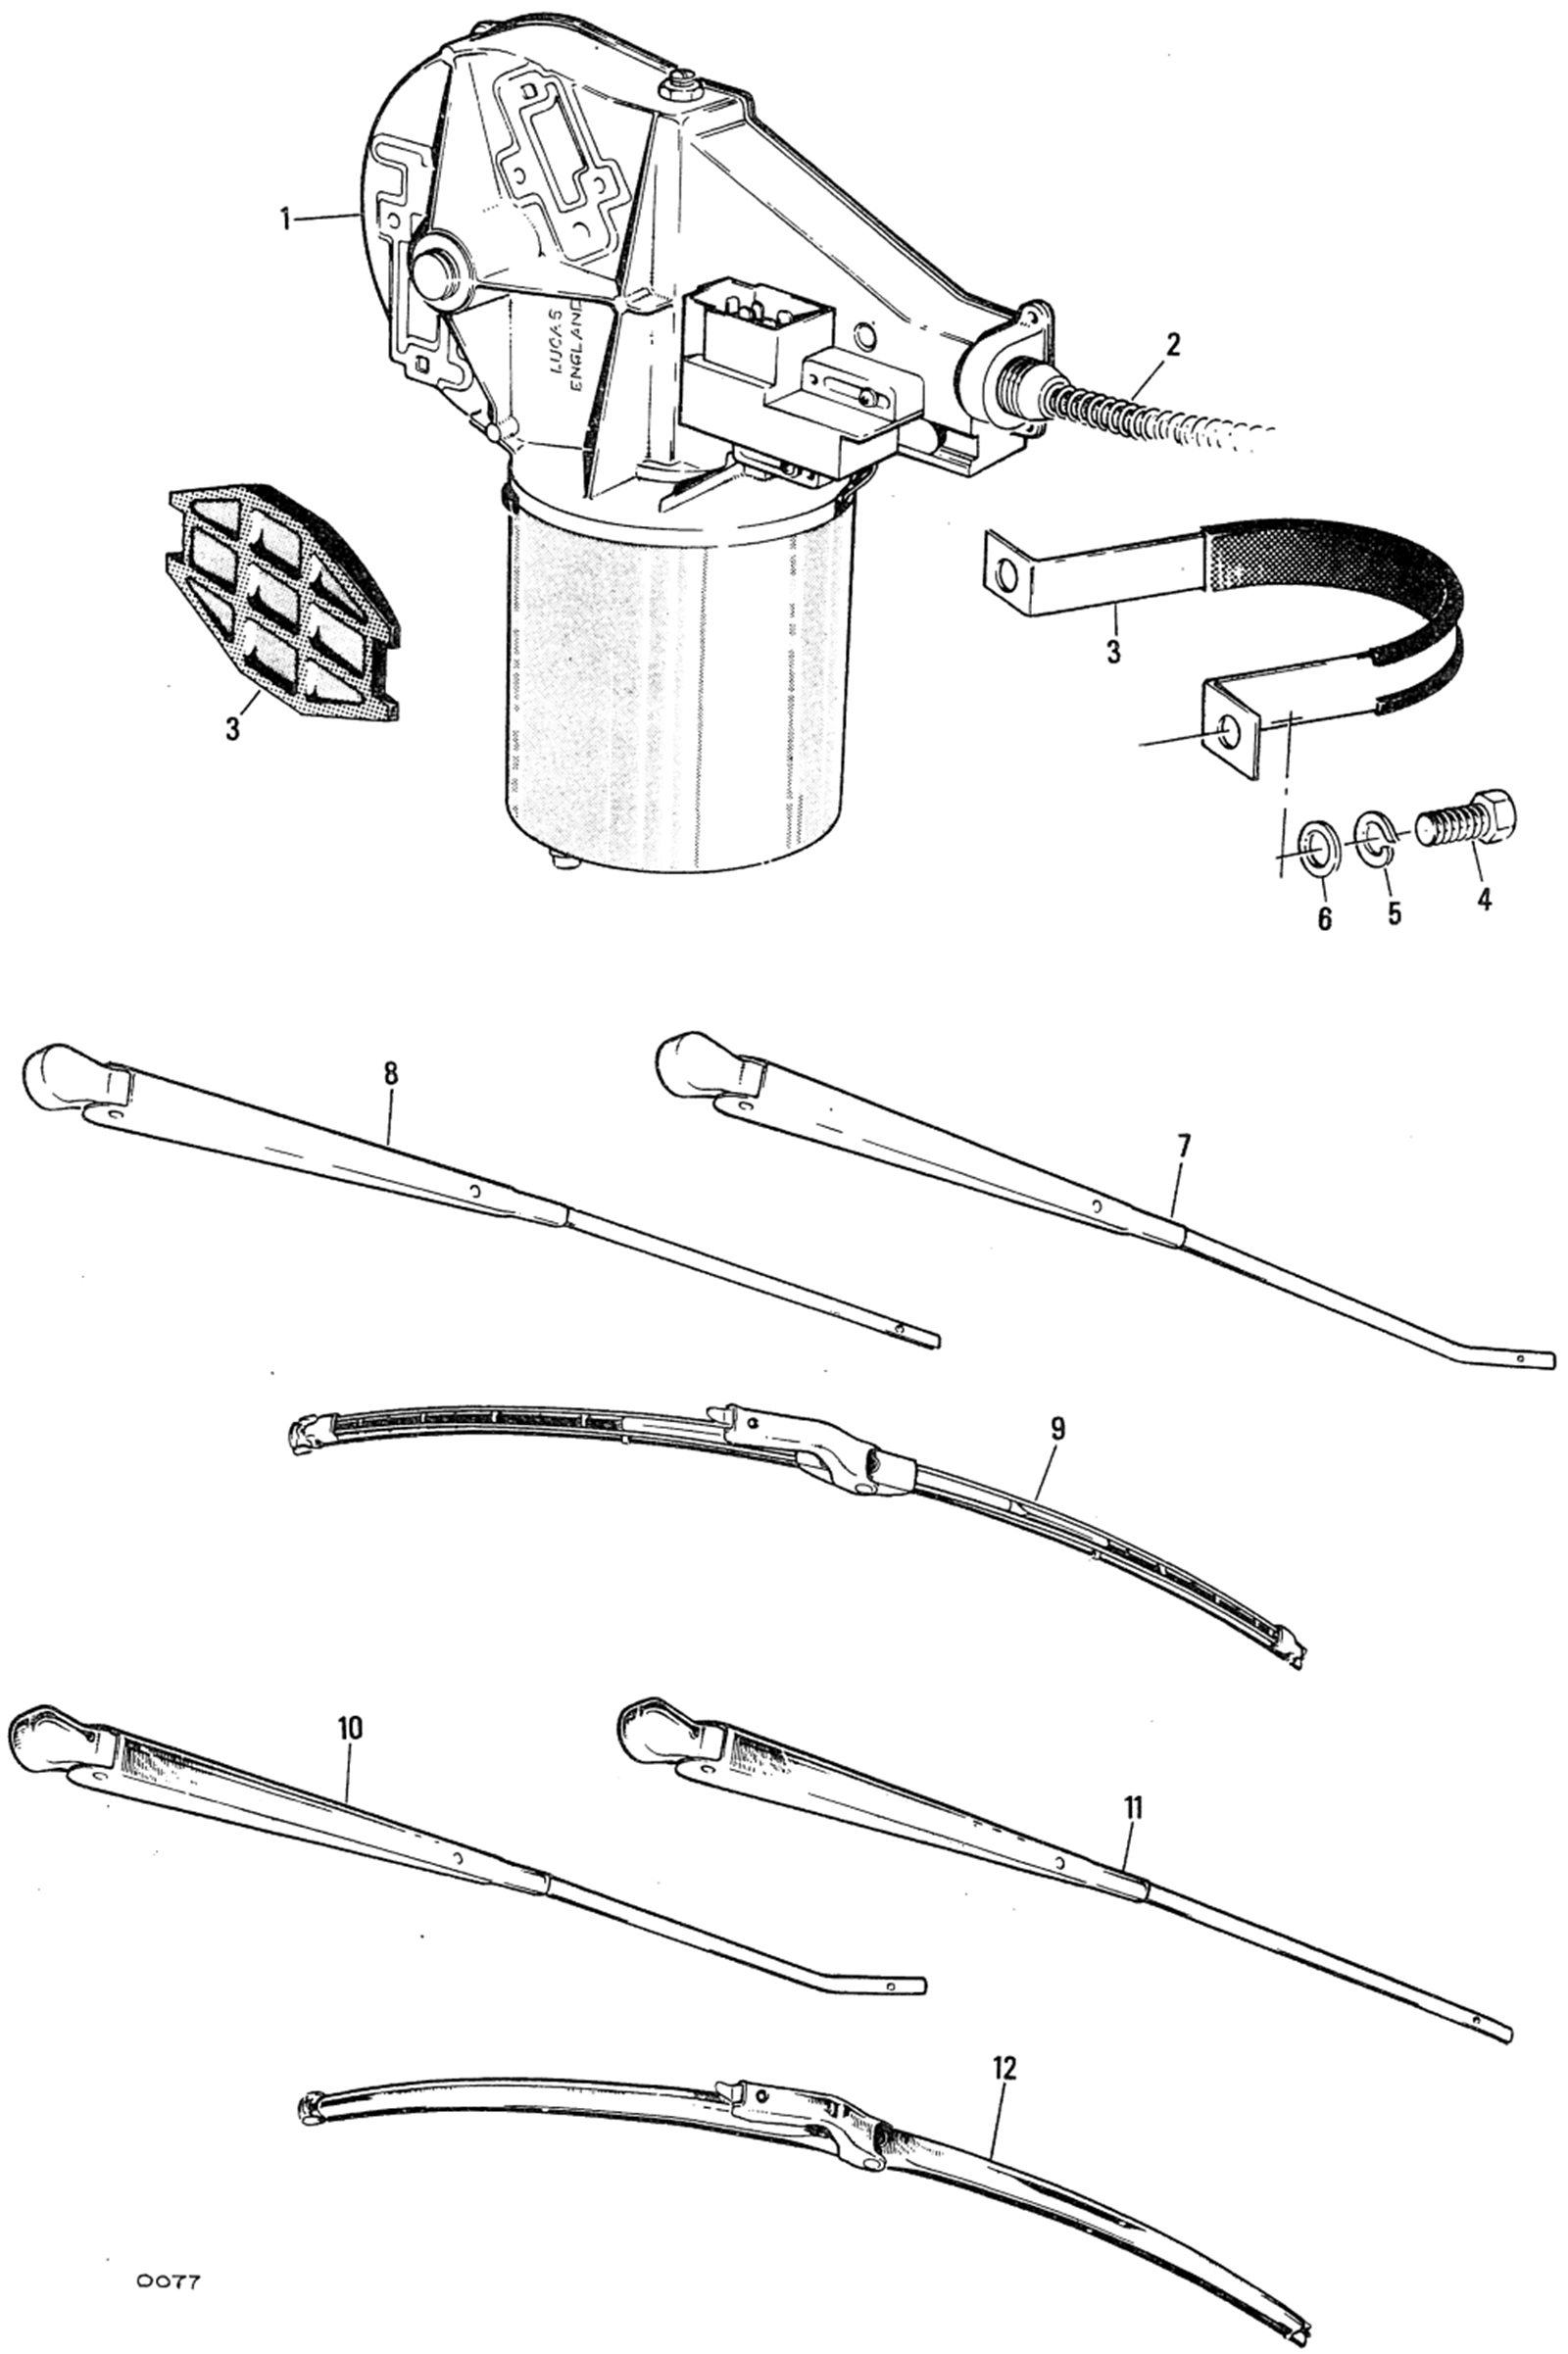 Window Wiper Motor Arms And Blades